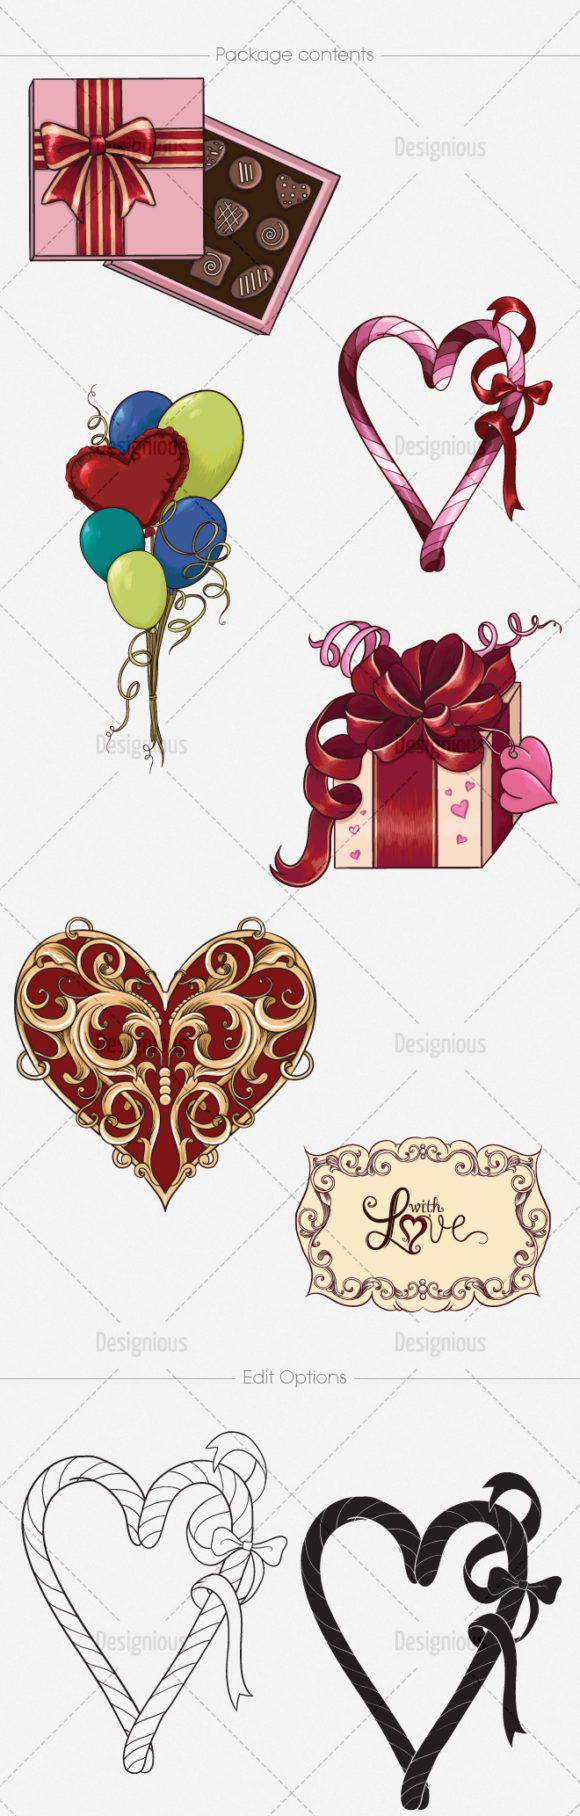 Valentines Day Vector Pack 1 6